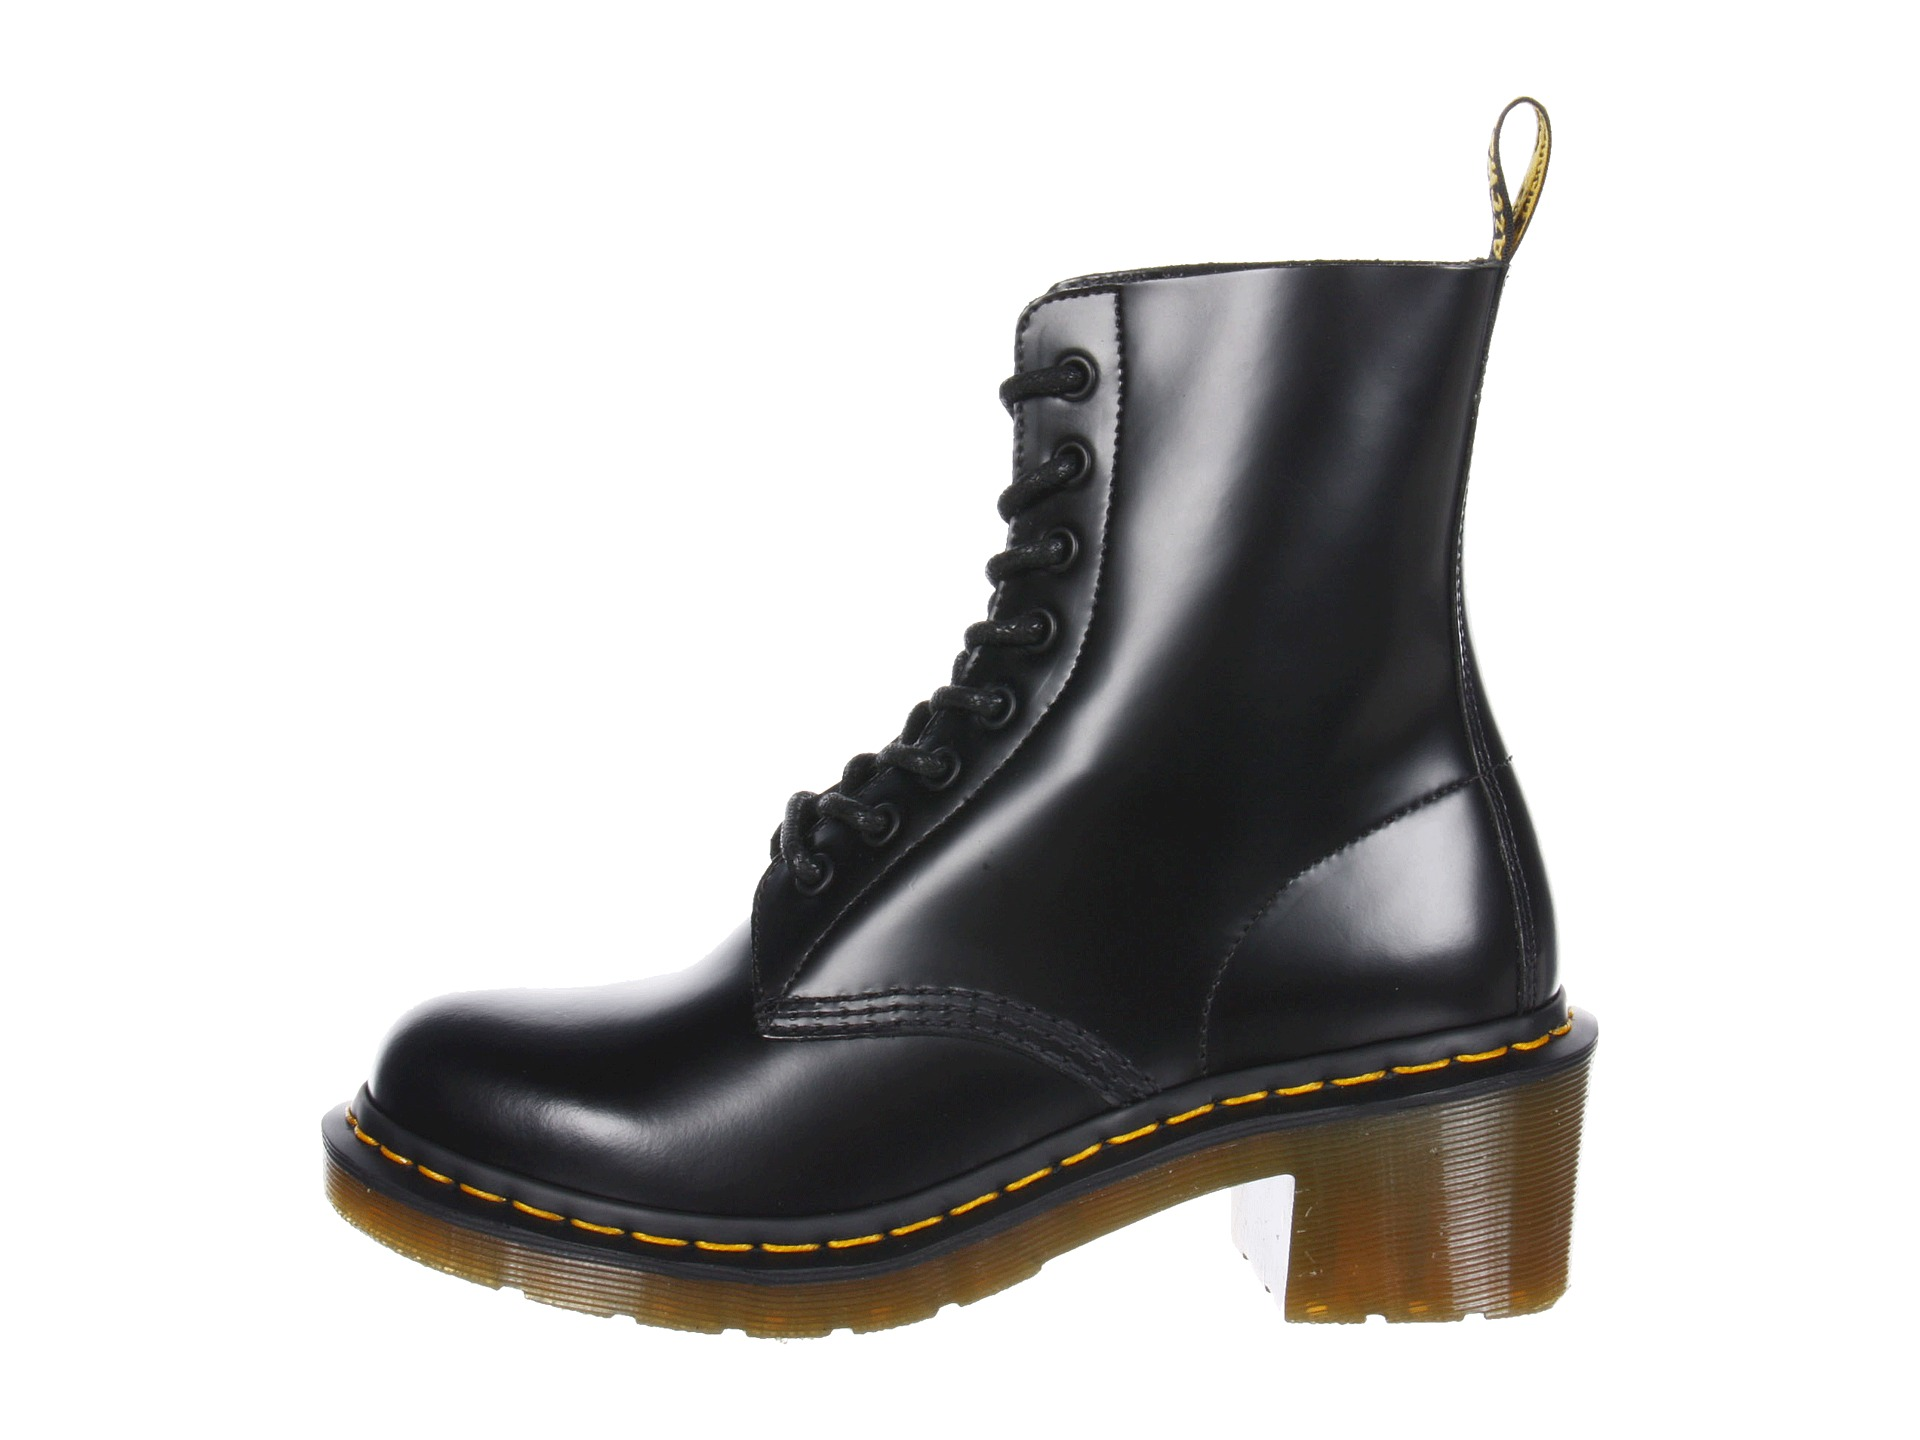 Dr Martens Clemency Boot July 2017